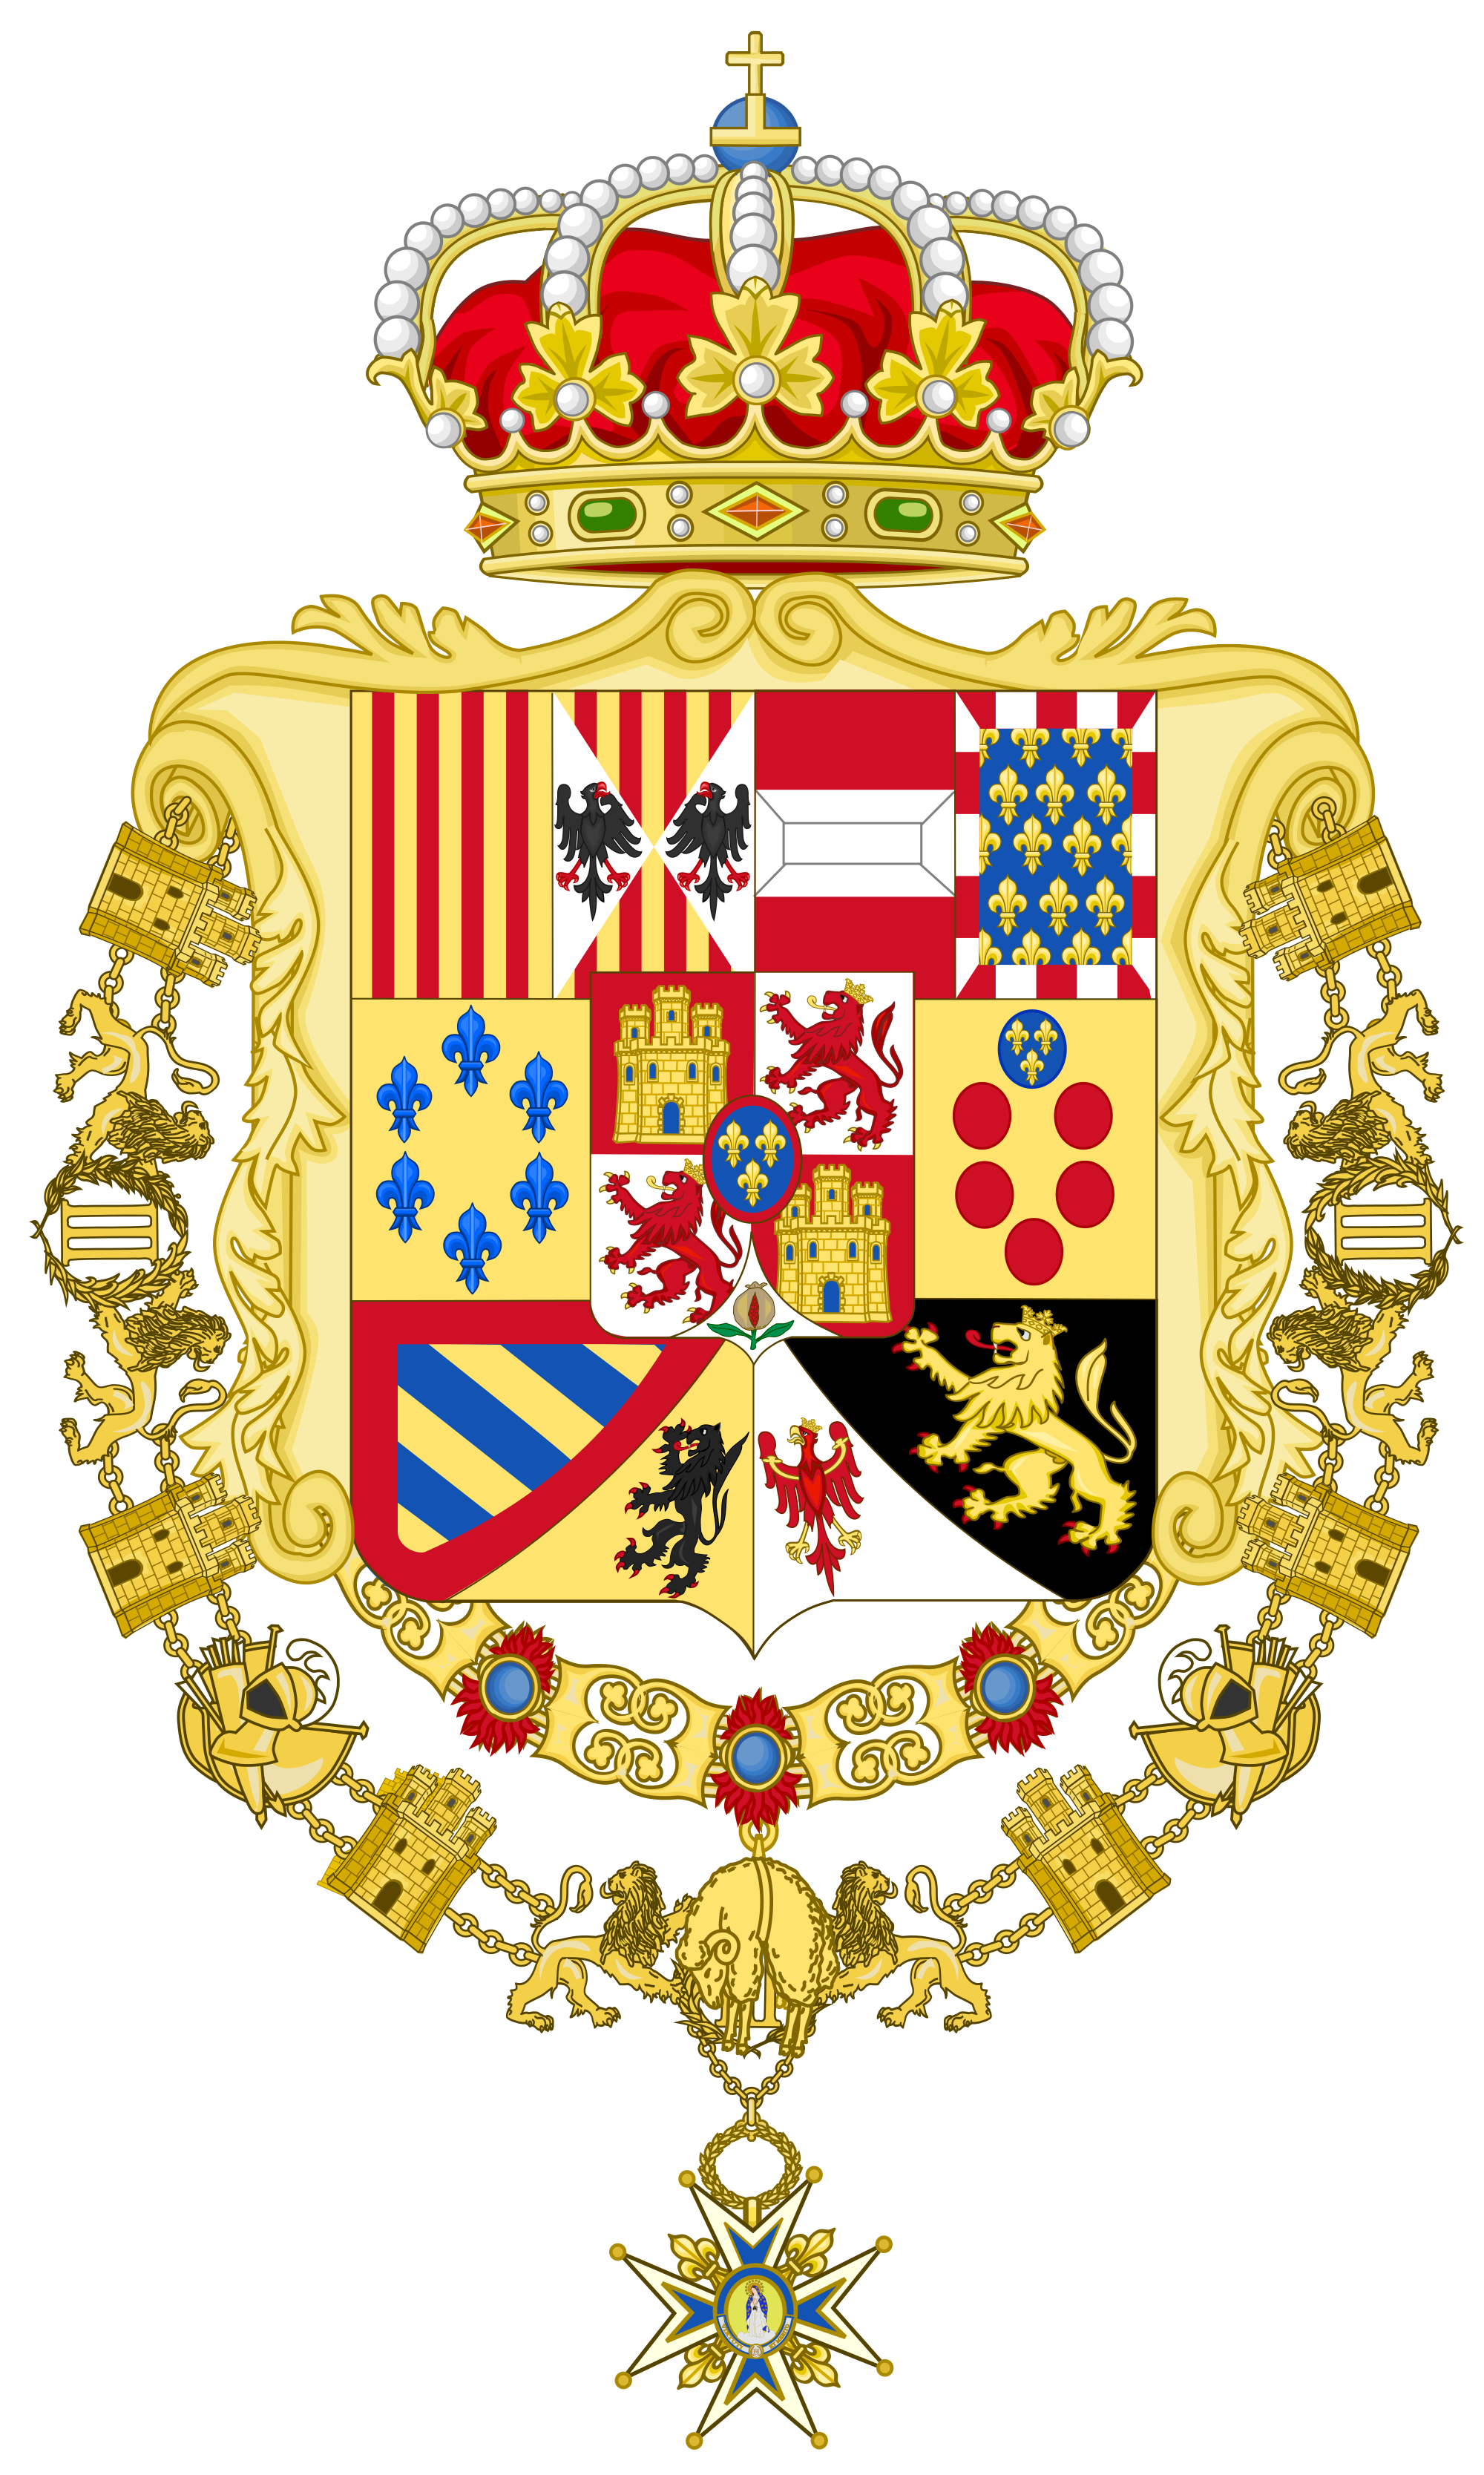 Royal greater coat of arms of spain 1761 1868 and 1874 1931 fileroyal greater coat of arms of spain and version with golden fleece and order of charles iii collars biocorpaavc Choice Image